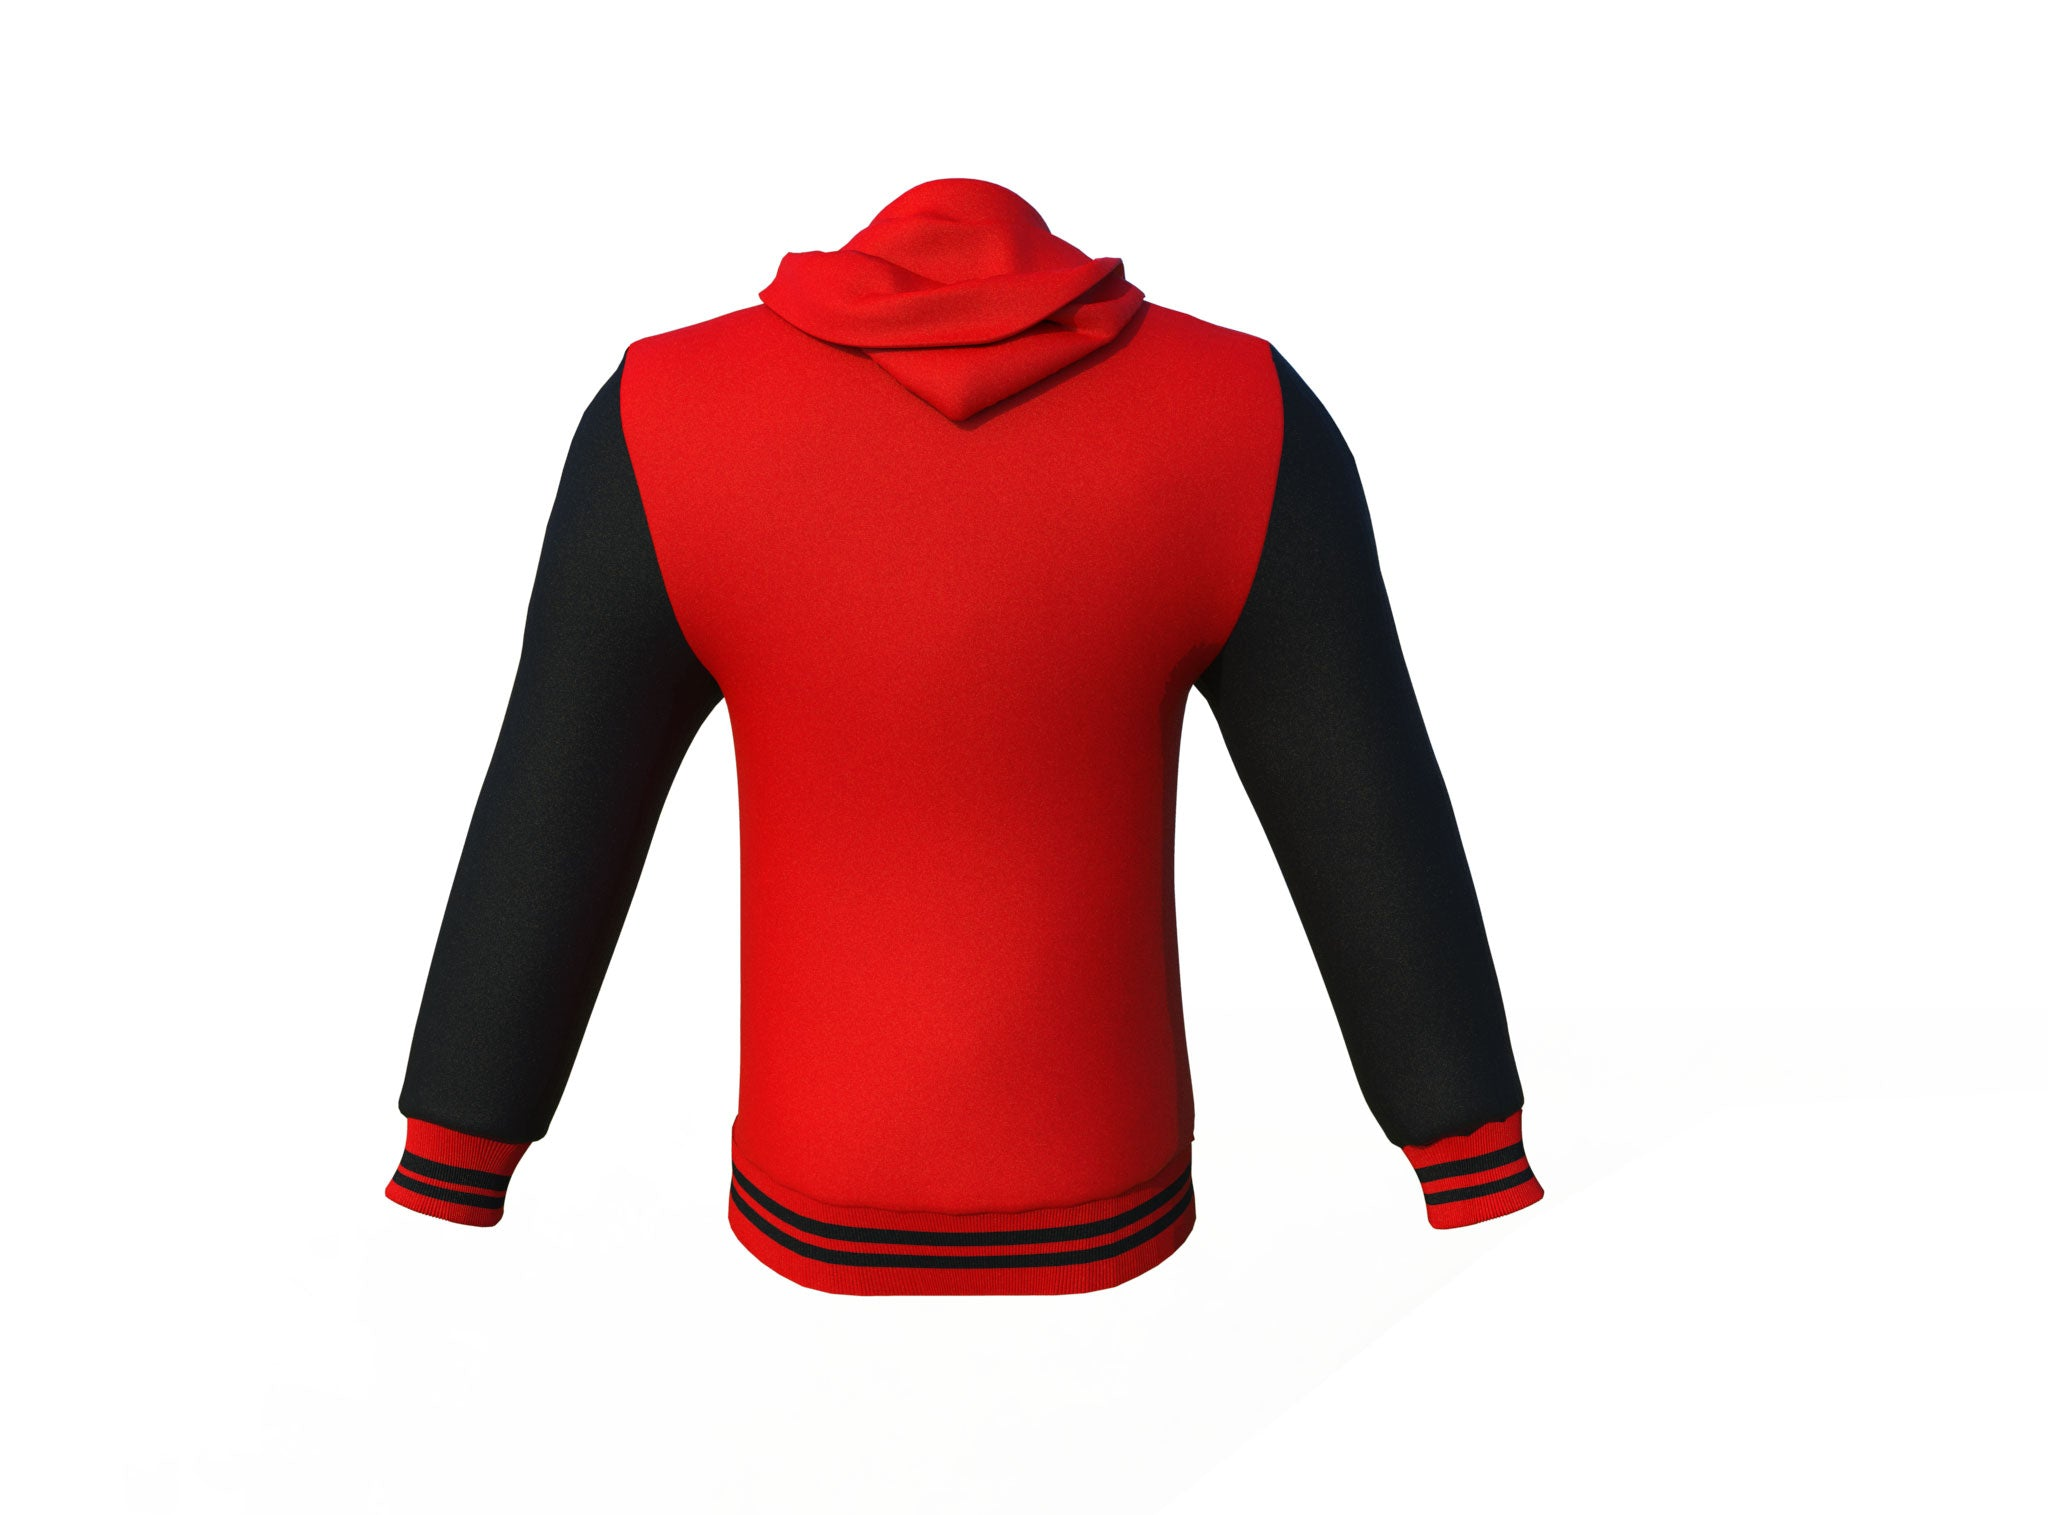 Red Varsity Letterman Jacket with Black Sleeves